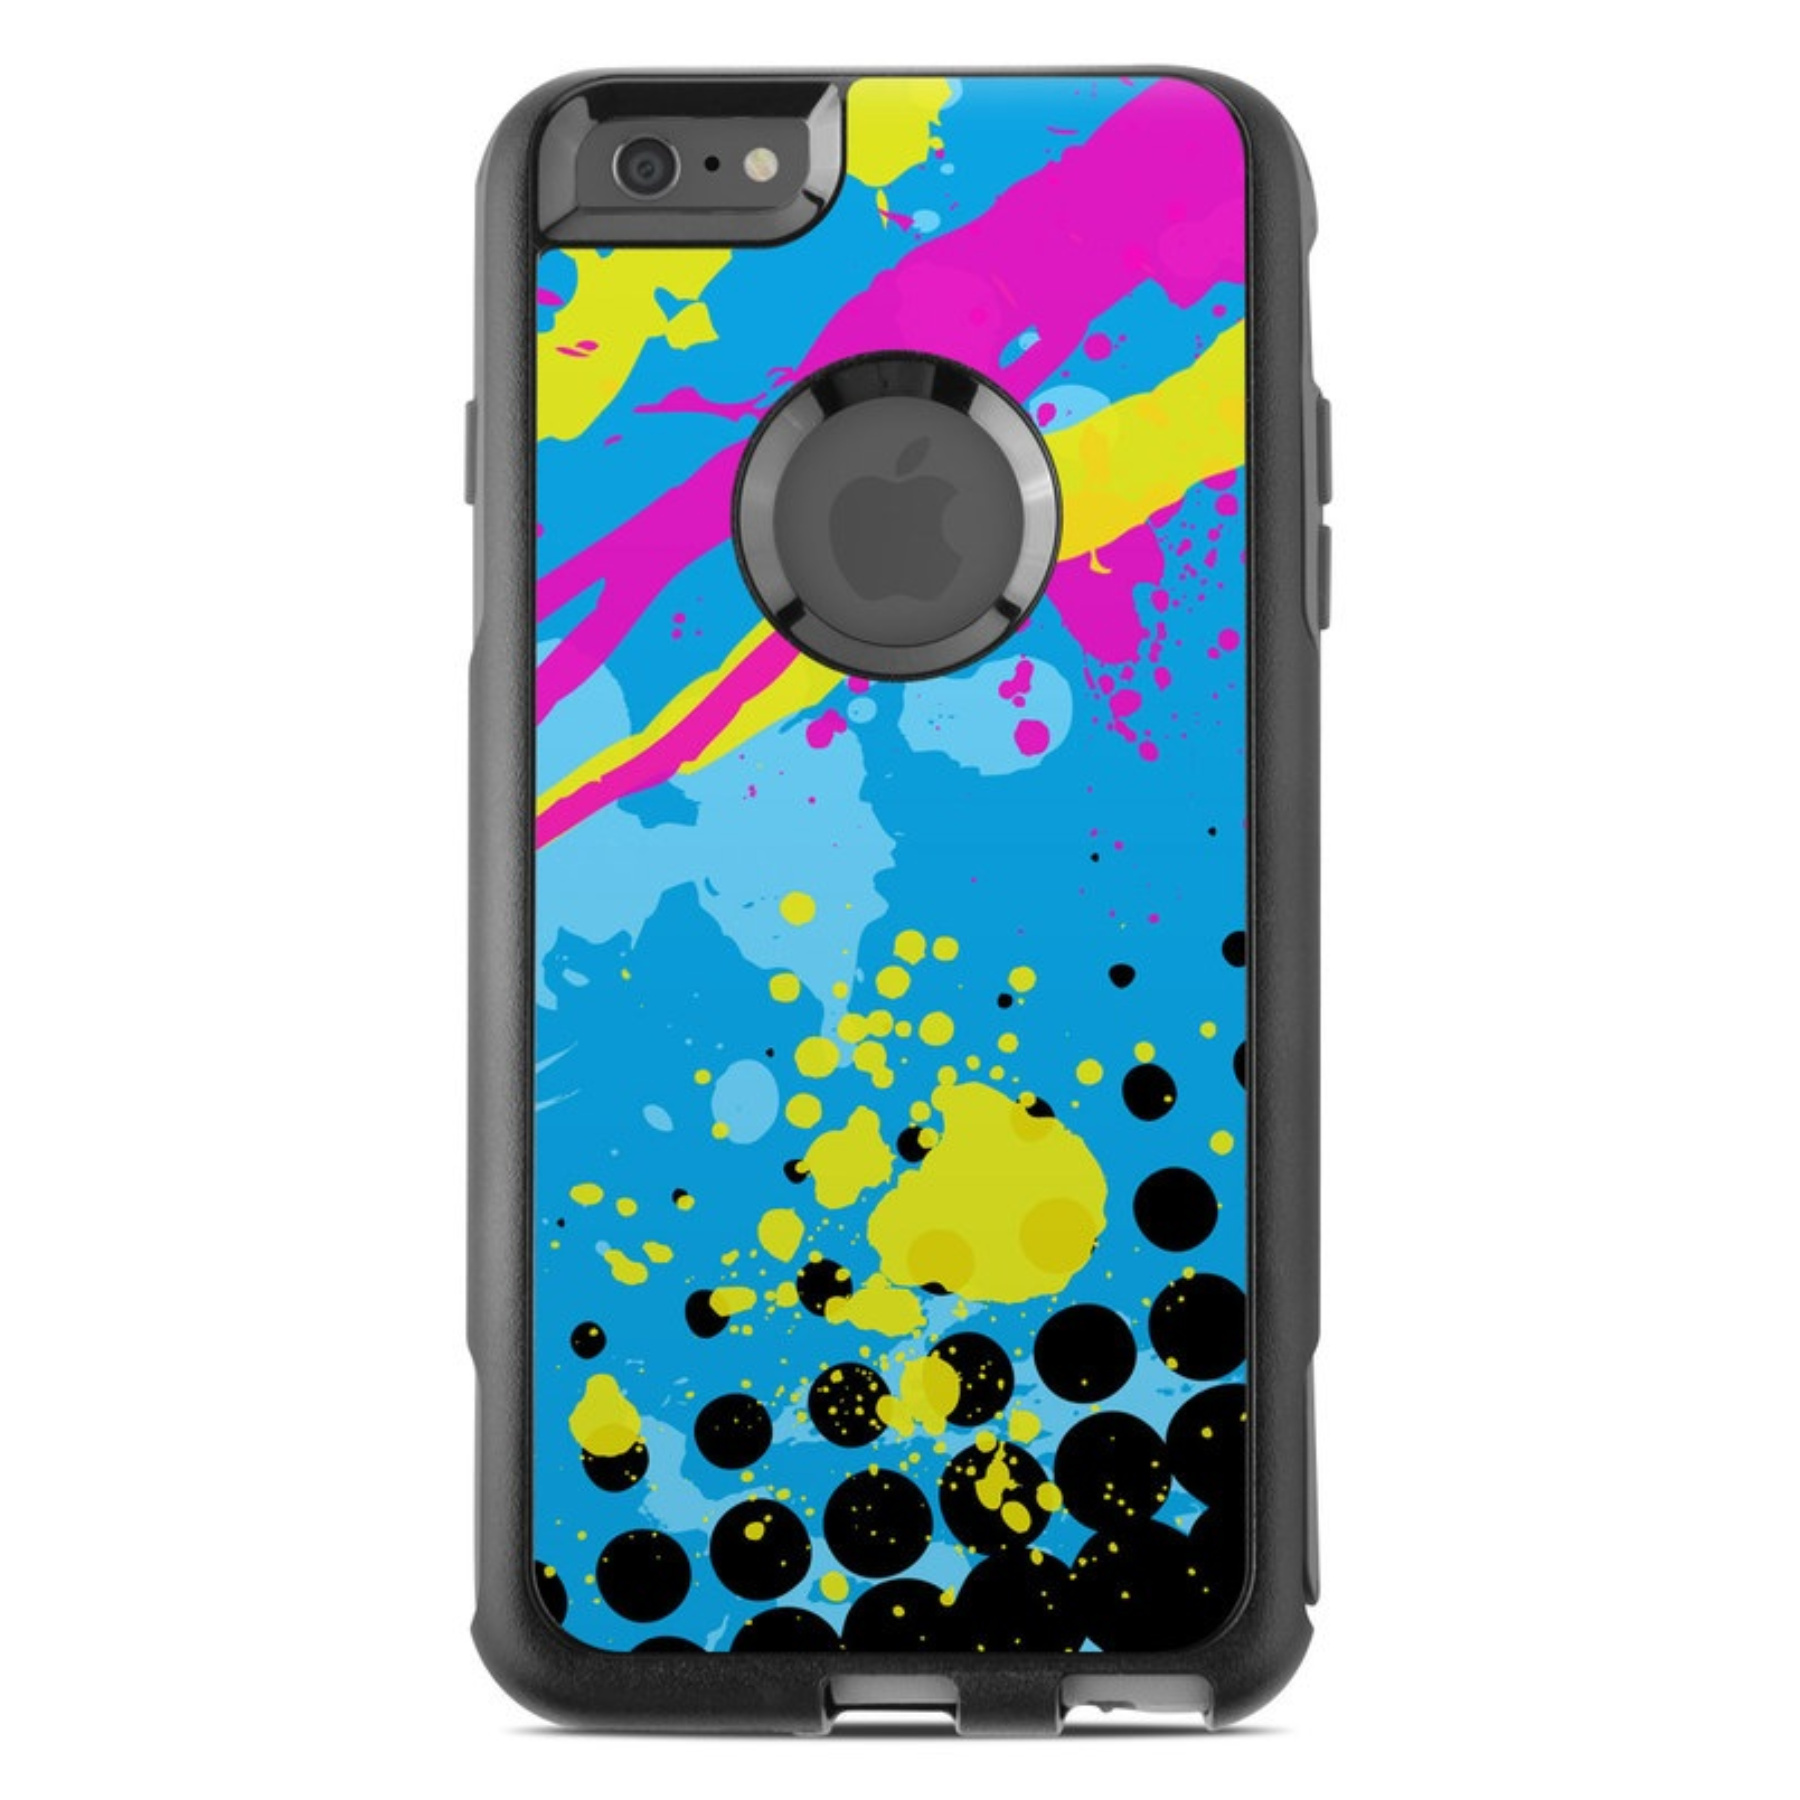 Decal Girl DecalGirl OI6P ACID OtterBox Commuter iPhone 6 Plus Skin